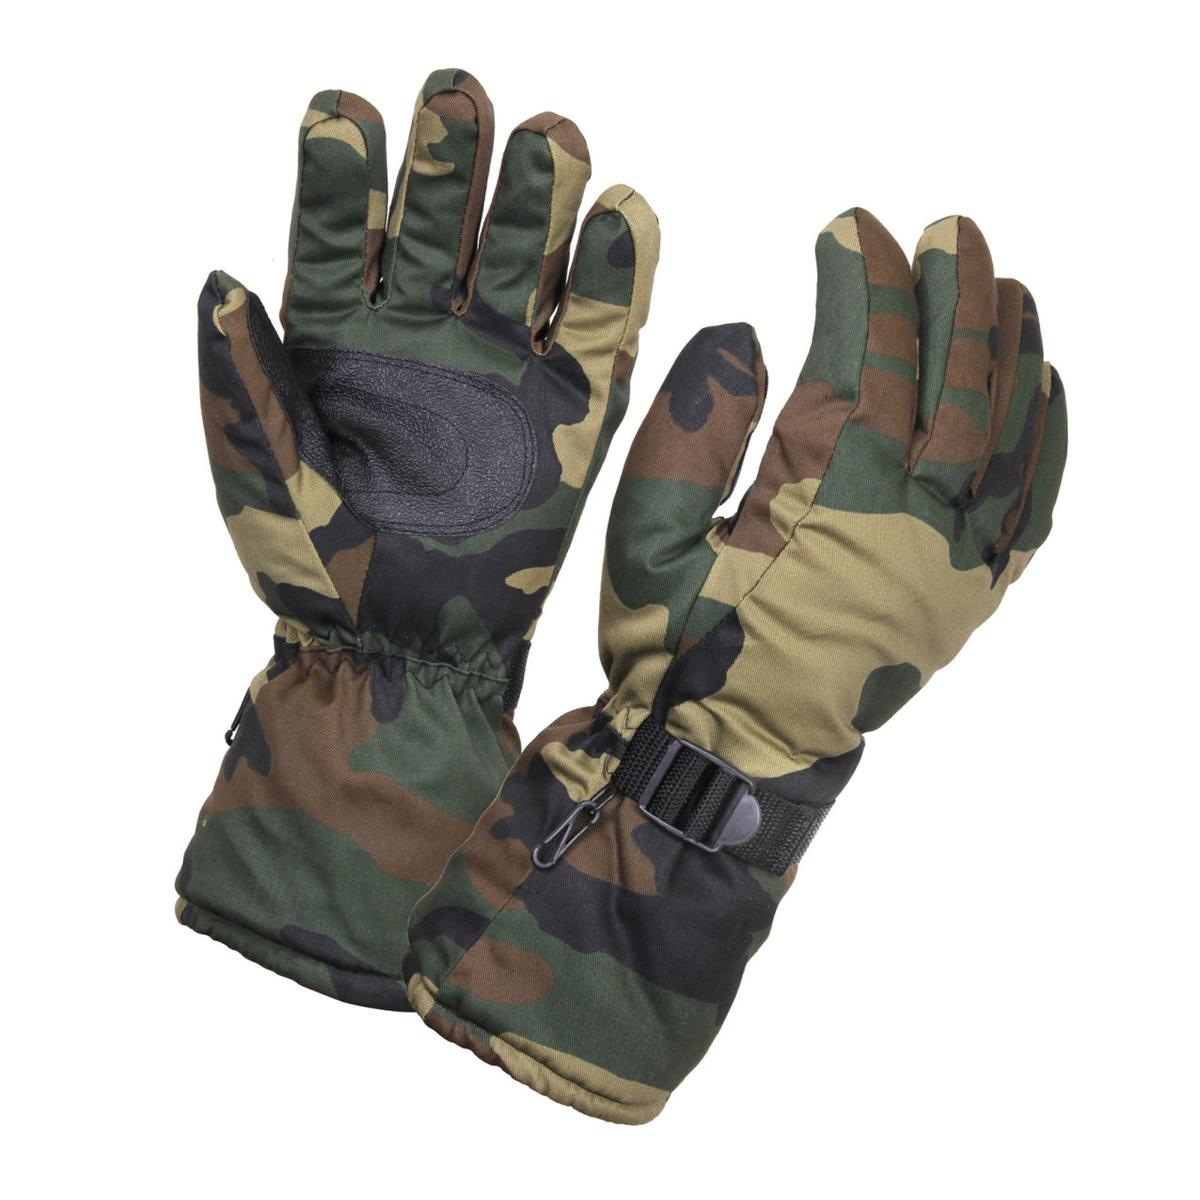 Rothco Extra-Long Insulated Gloves, Woodland Camo by Insulated Gloves